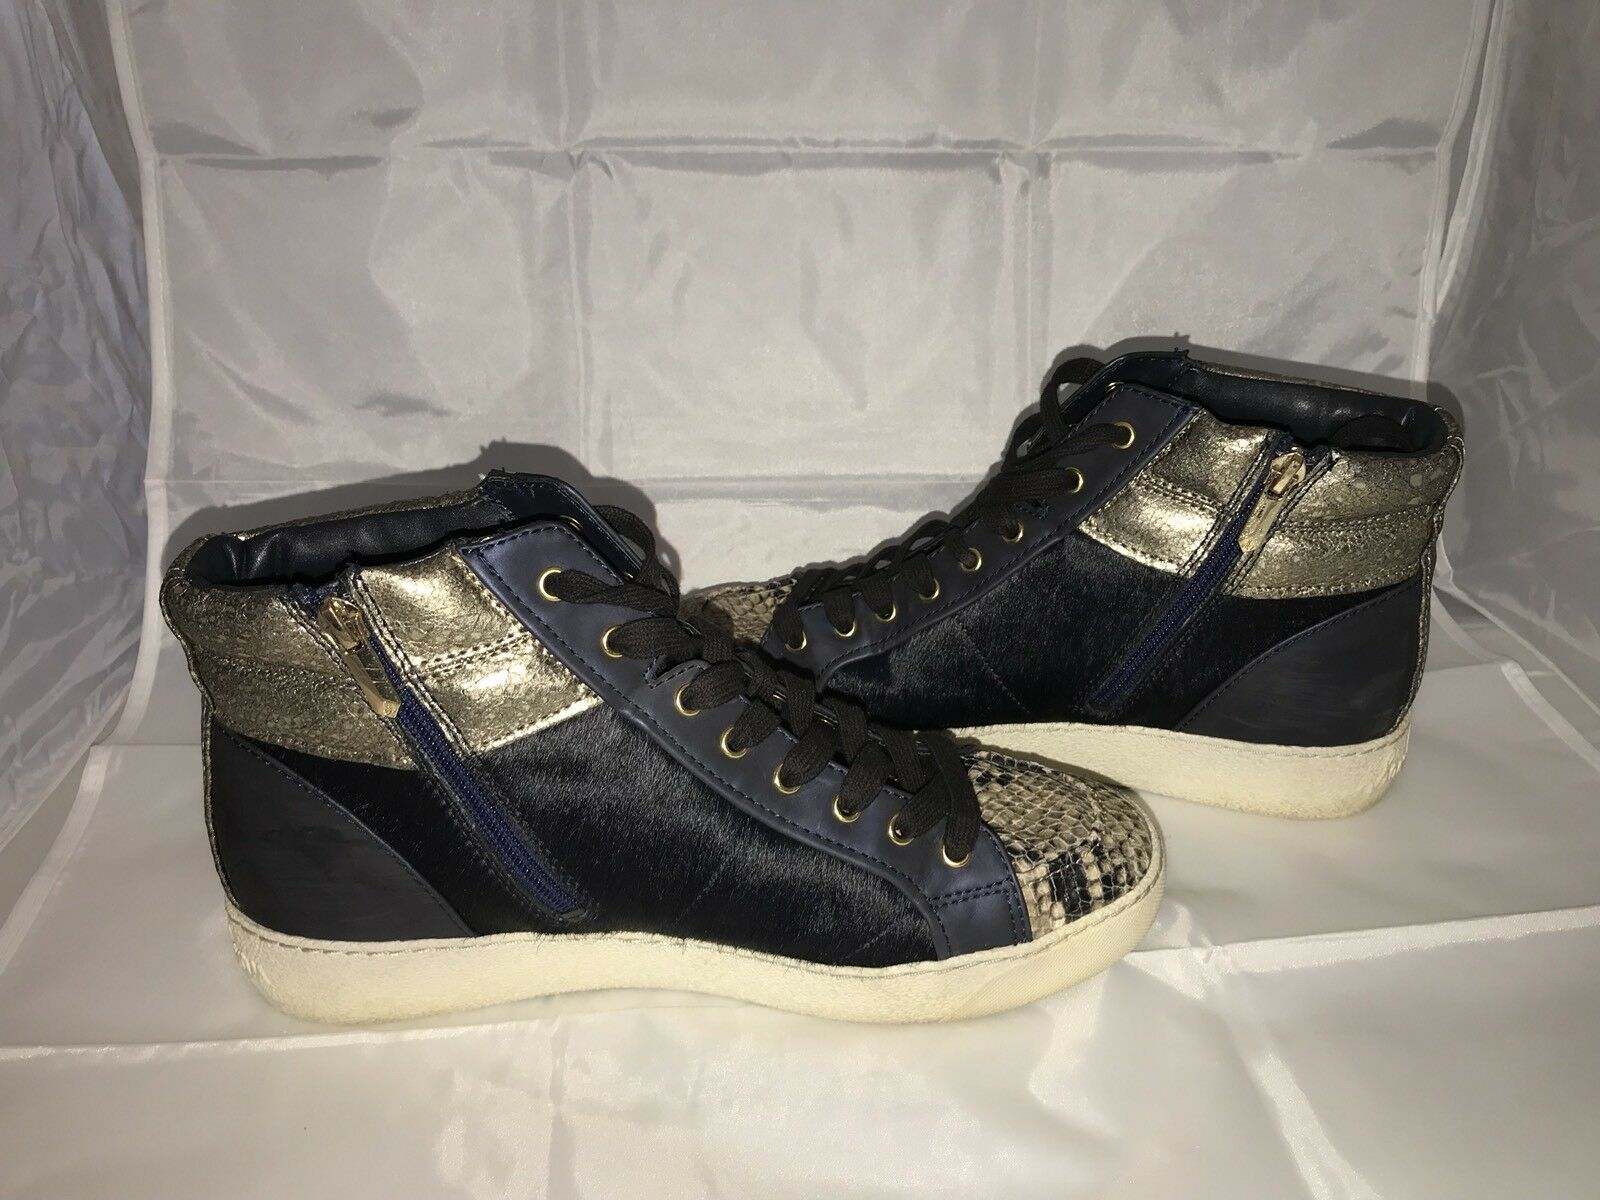 Sam Edelman Britt High Top Sneaker Navy bluee Dyed Cow Fur w  Snake Skin 9.5